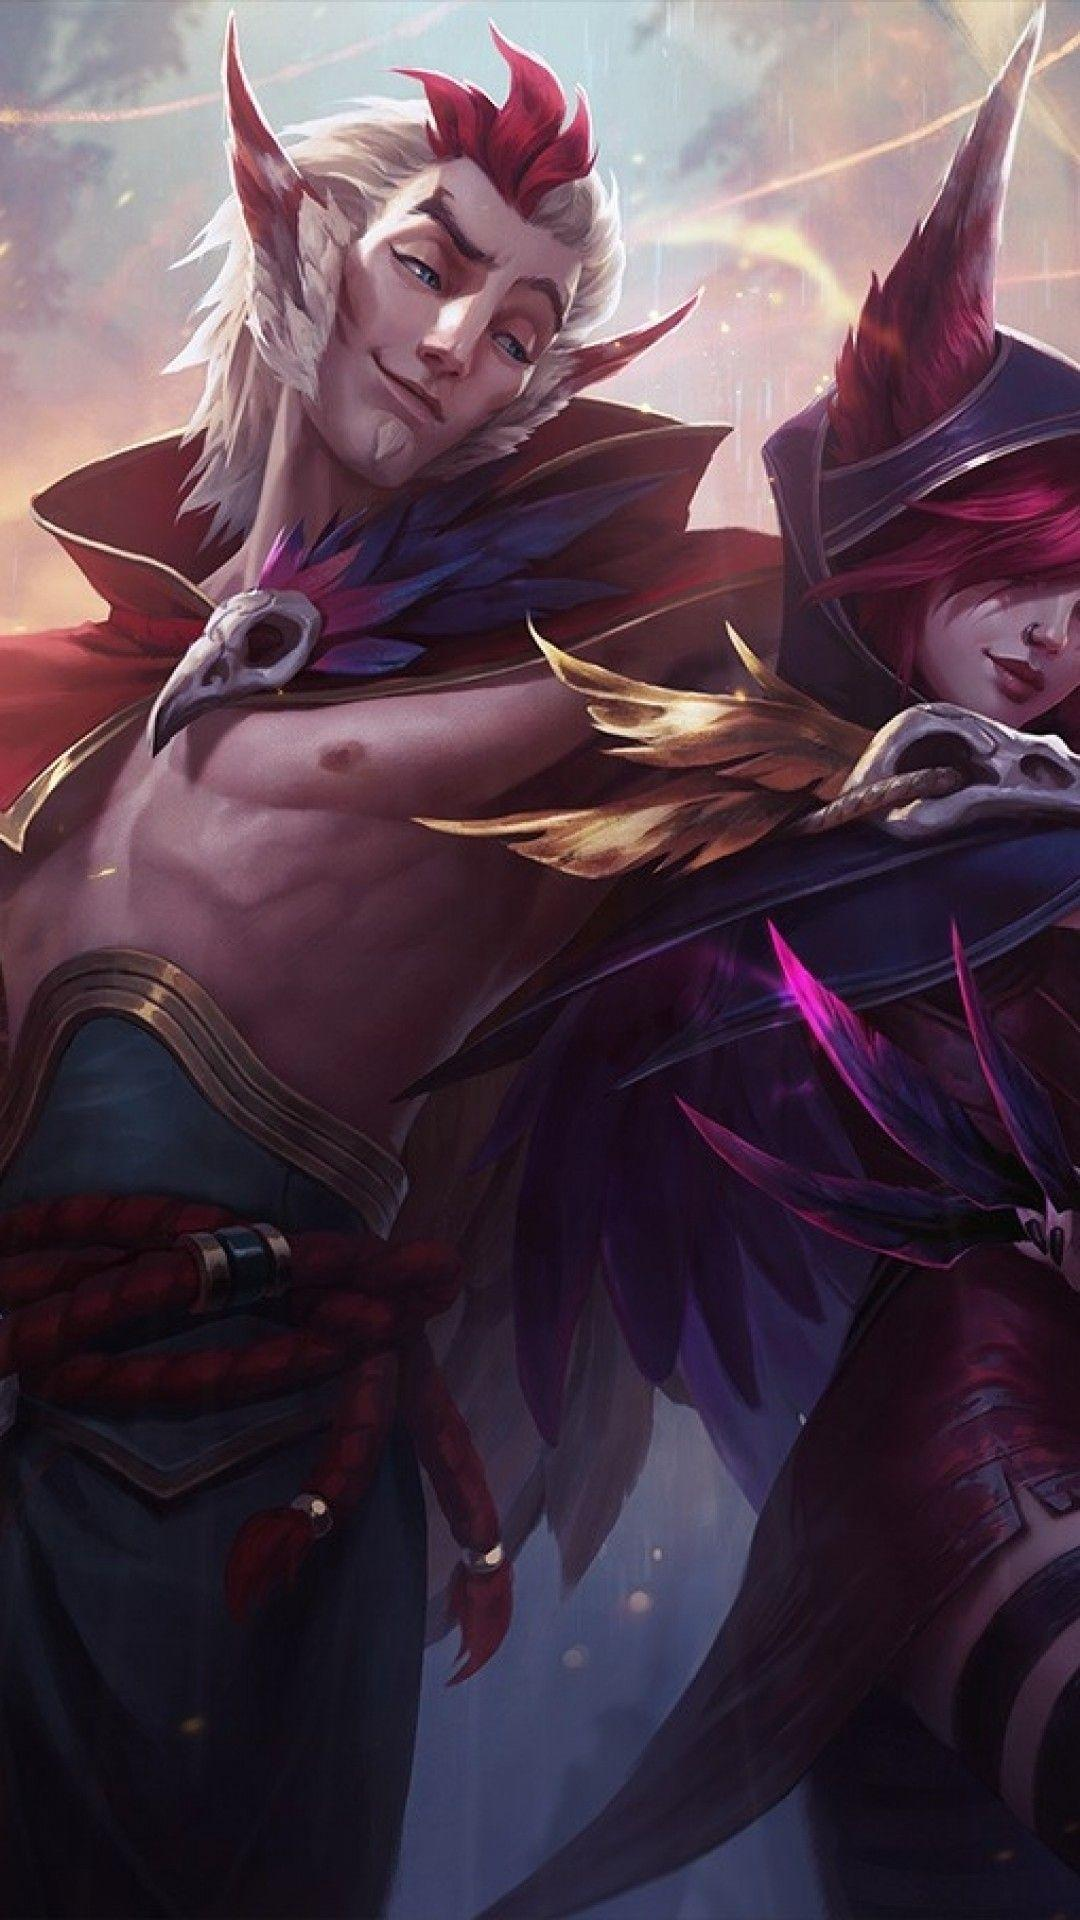 Download 1080x1920 League Of Legends, Rakan, Xayah, Artwork ...